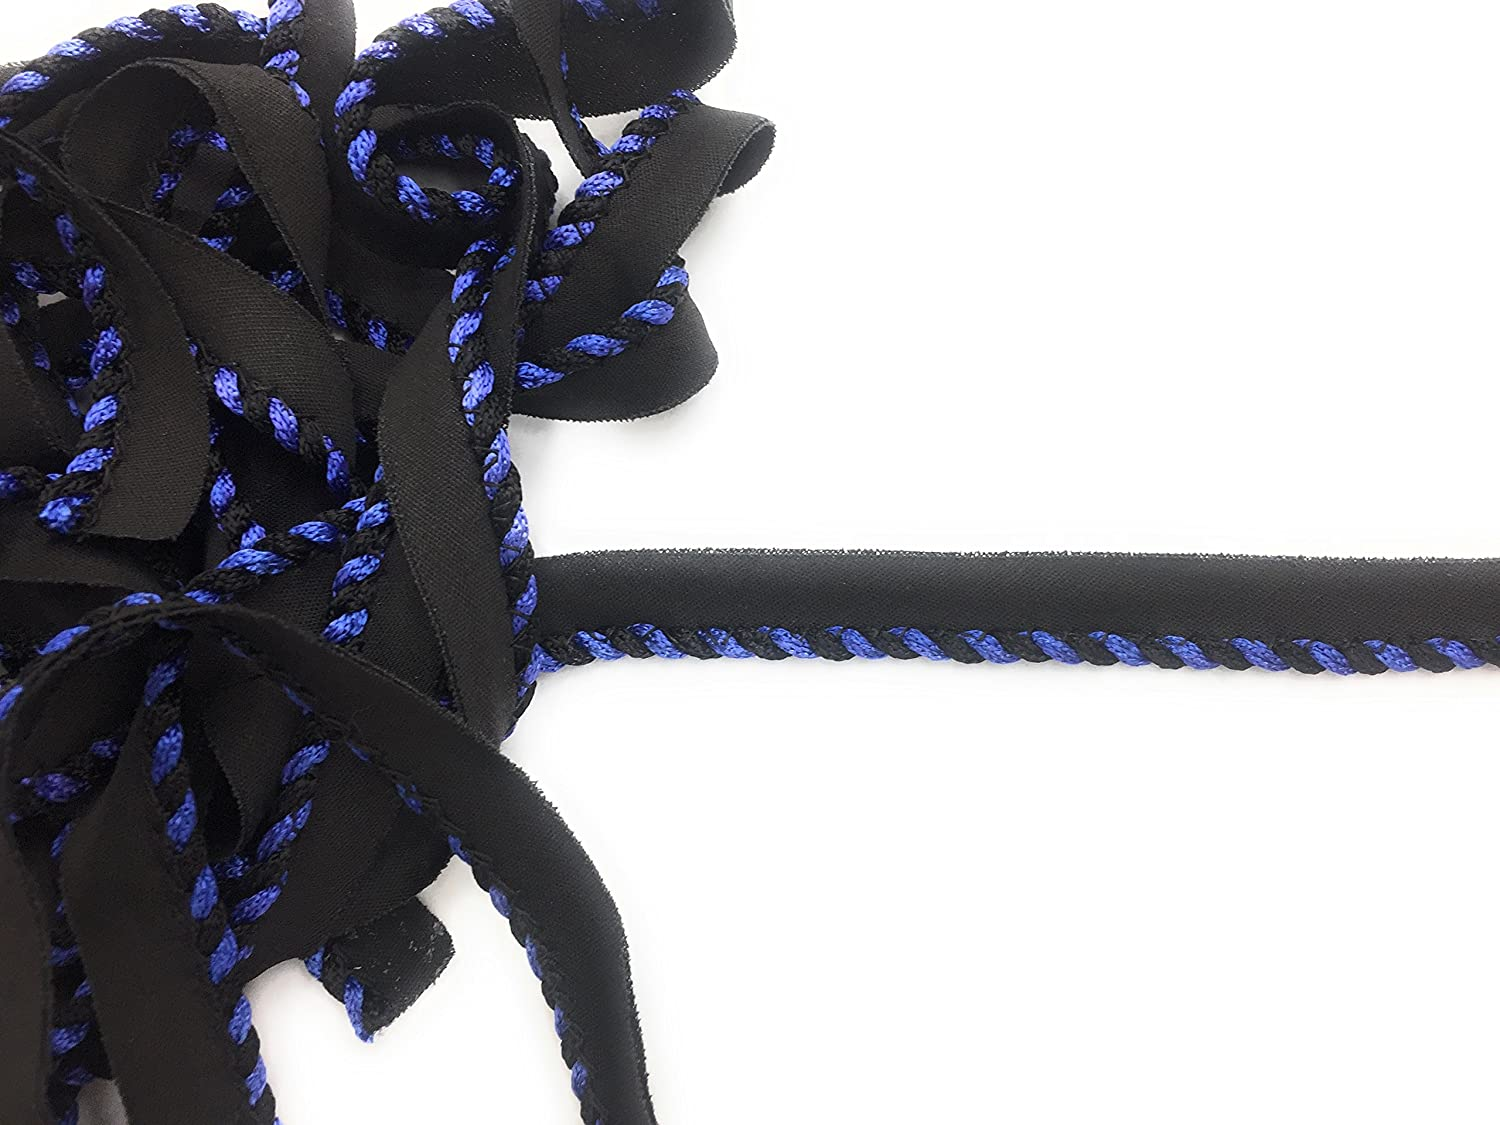 Cord-edge -Piping Trim Blue On Black lip -Lip Cord for Clothing Pillows, Lamps, Draperies 5 Yards Pi-129/108 Trims Unlimited